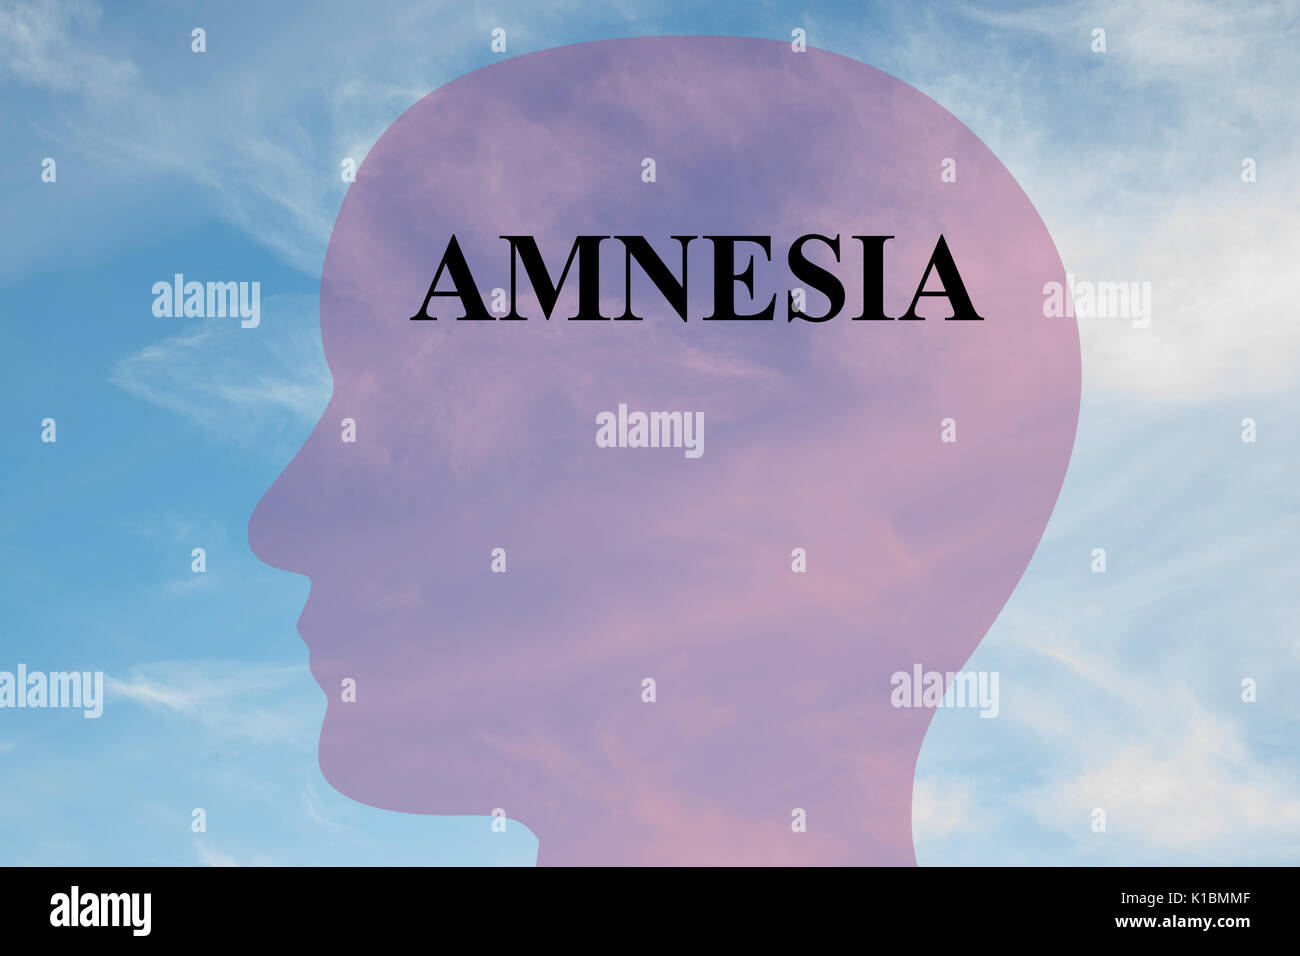 Render illustration of Amnesia title on head silhouette, with cloudy sky as a background. - Stock Image